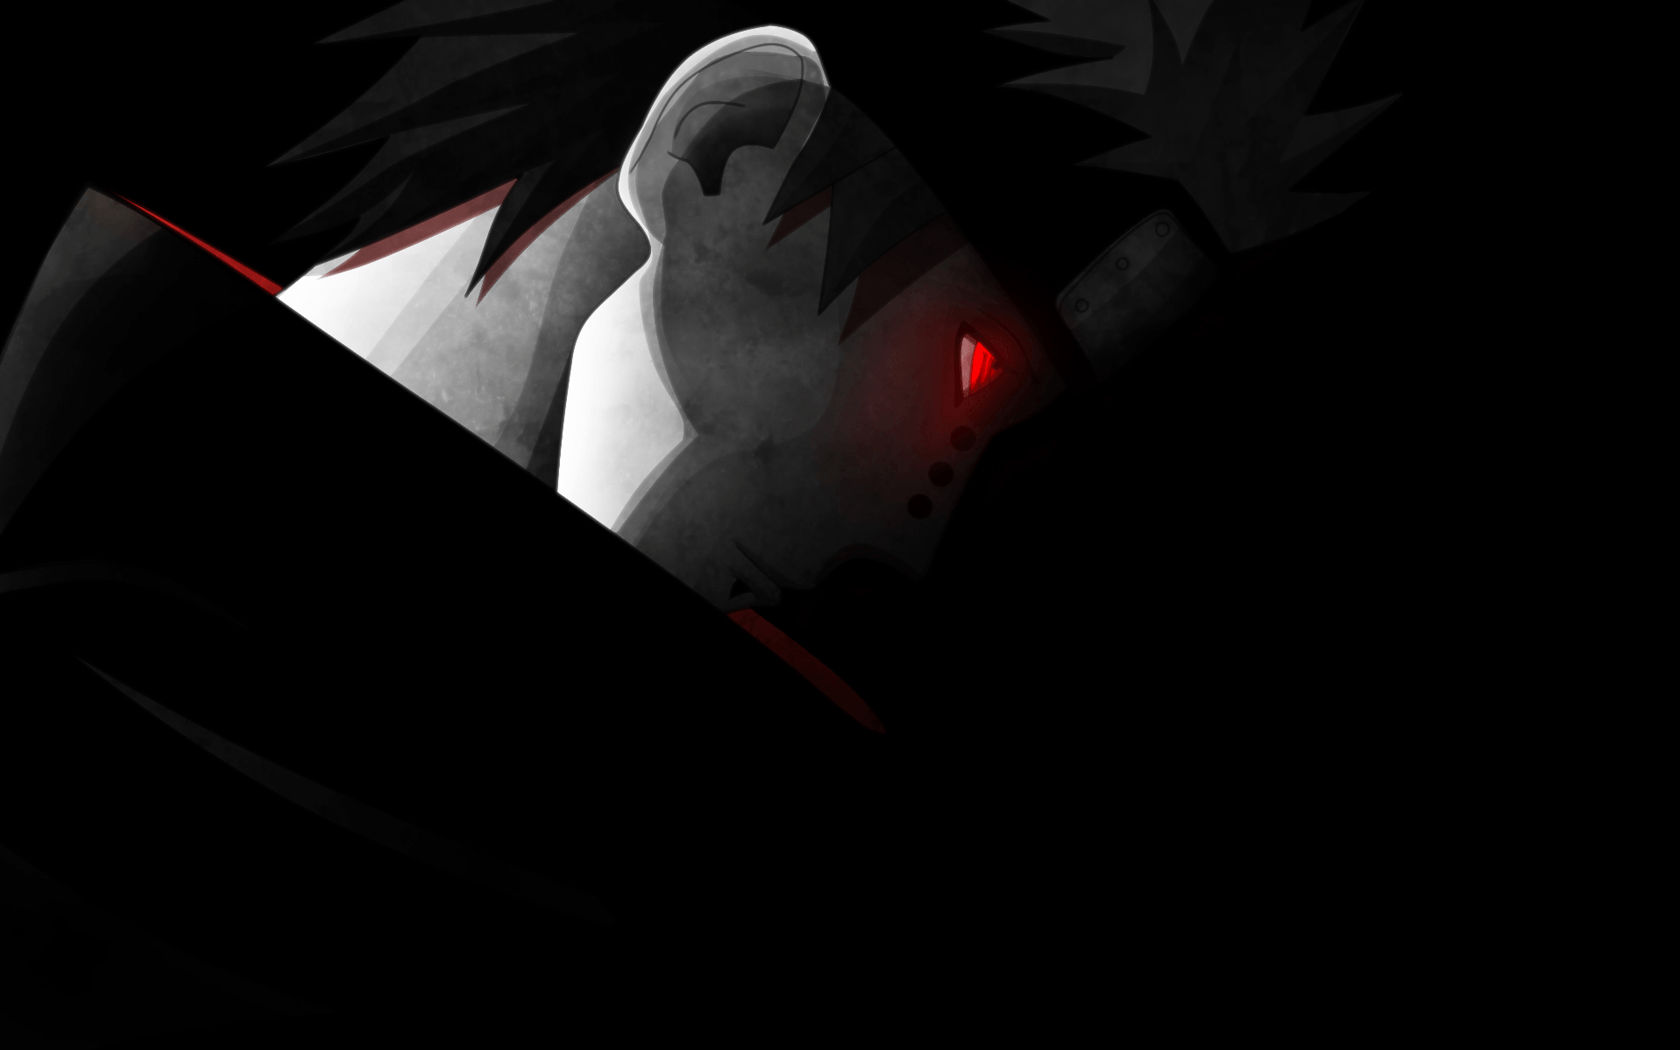 Naruto Pein Wallpapers - Wallpaper Cave